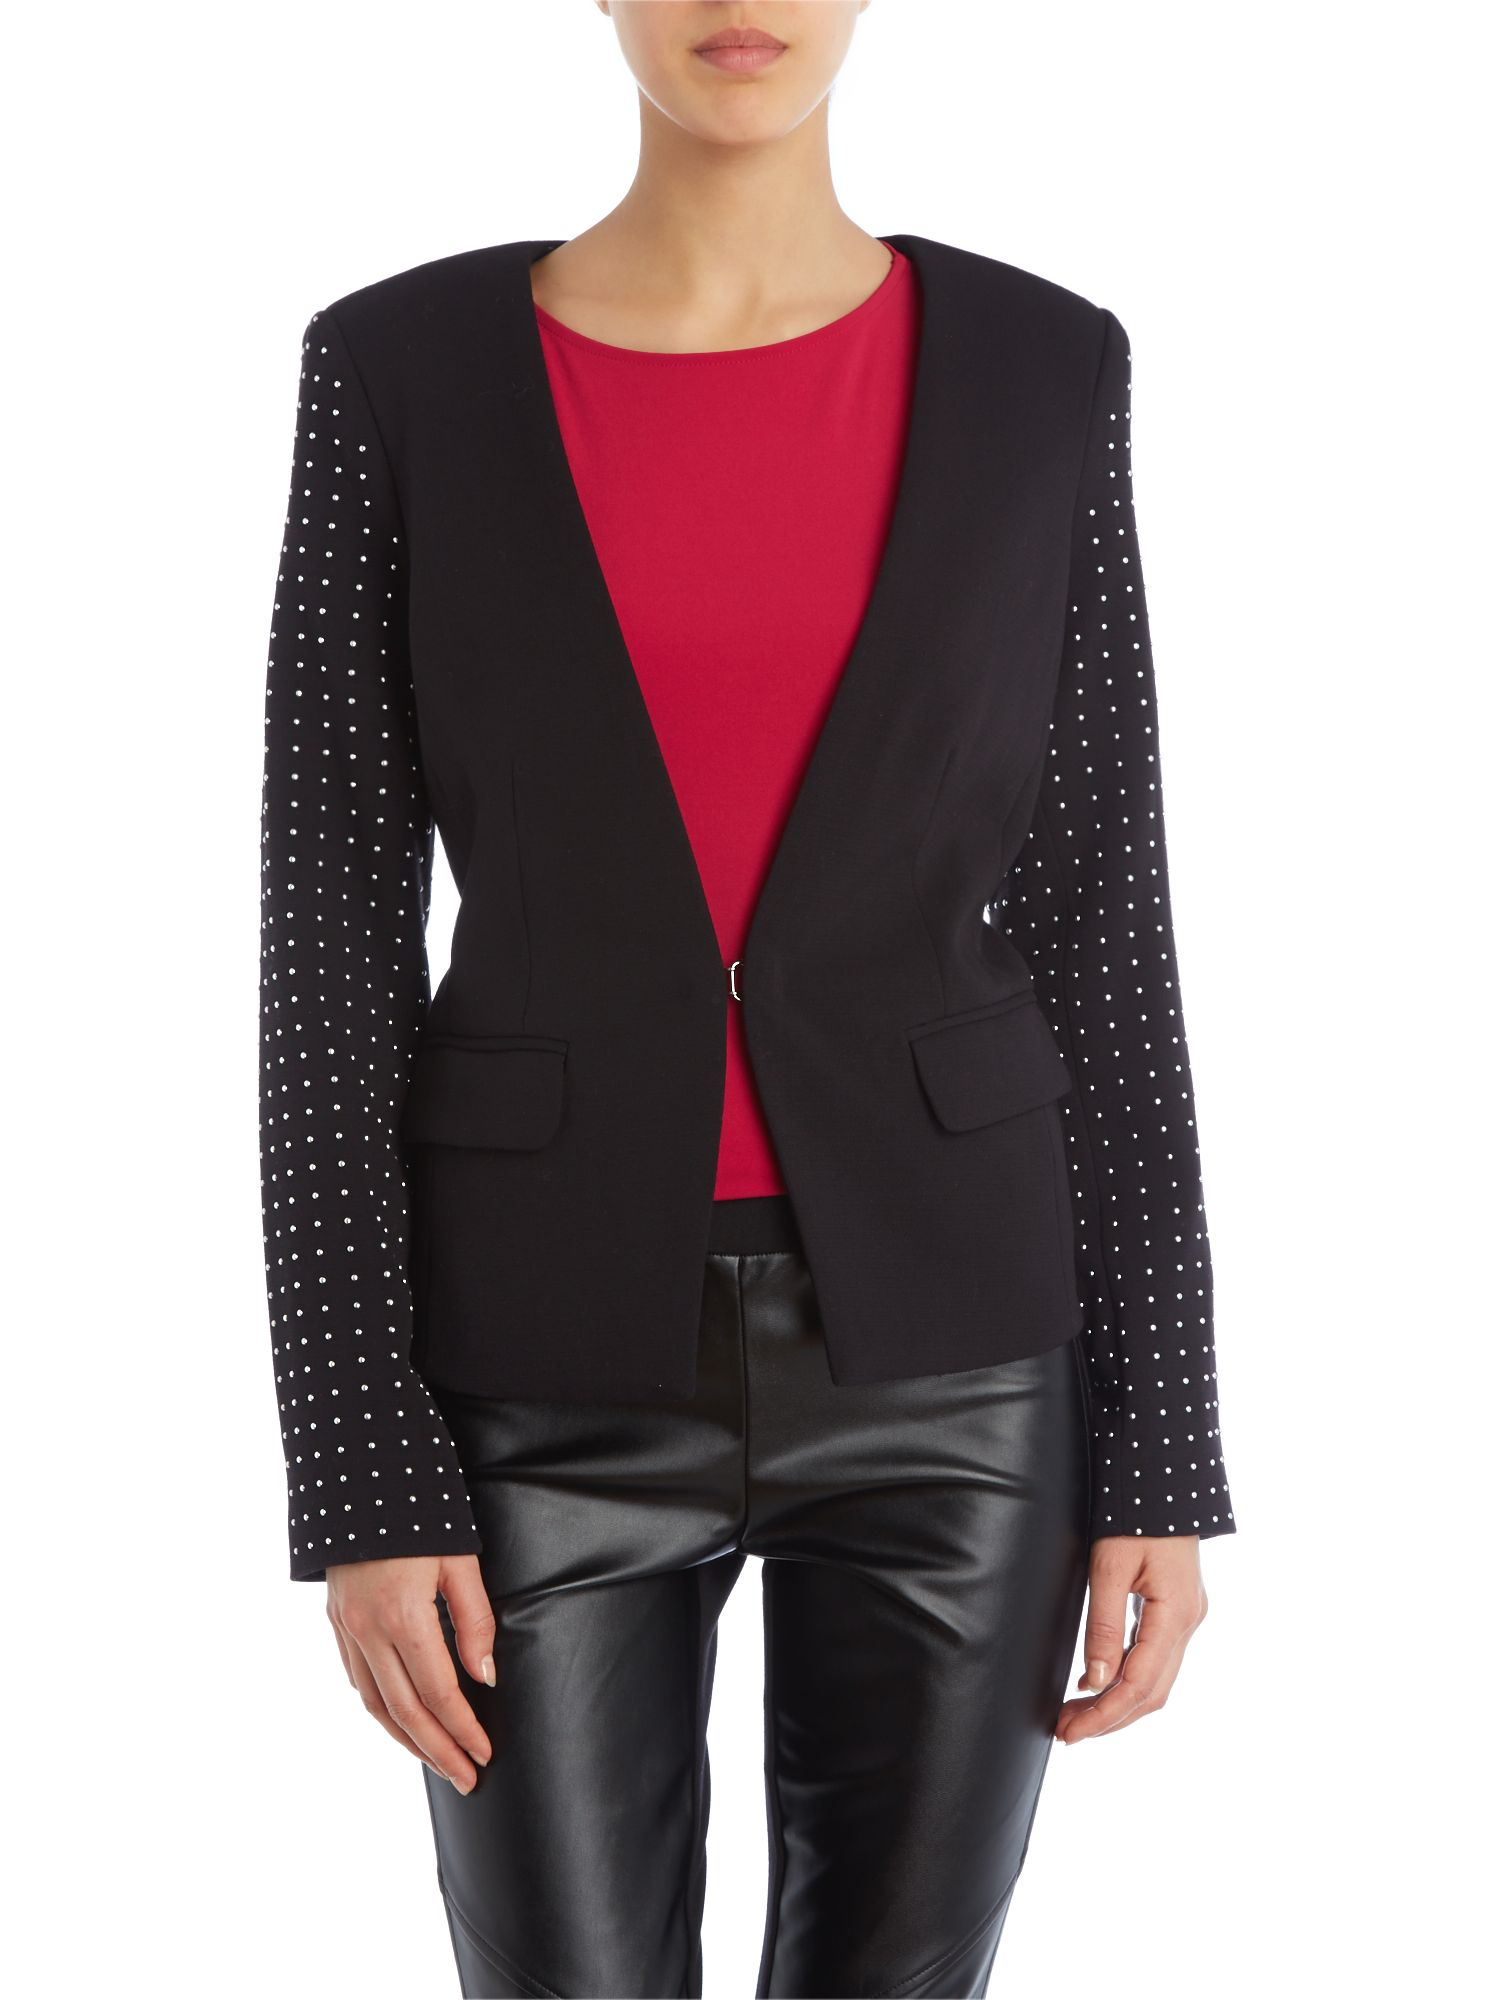 Blazer with studded sleeves